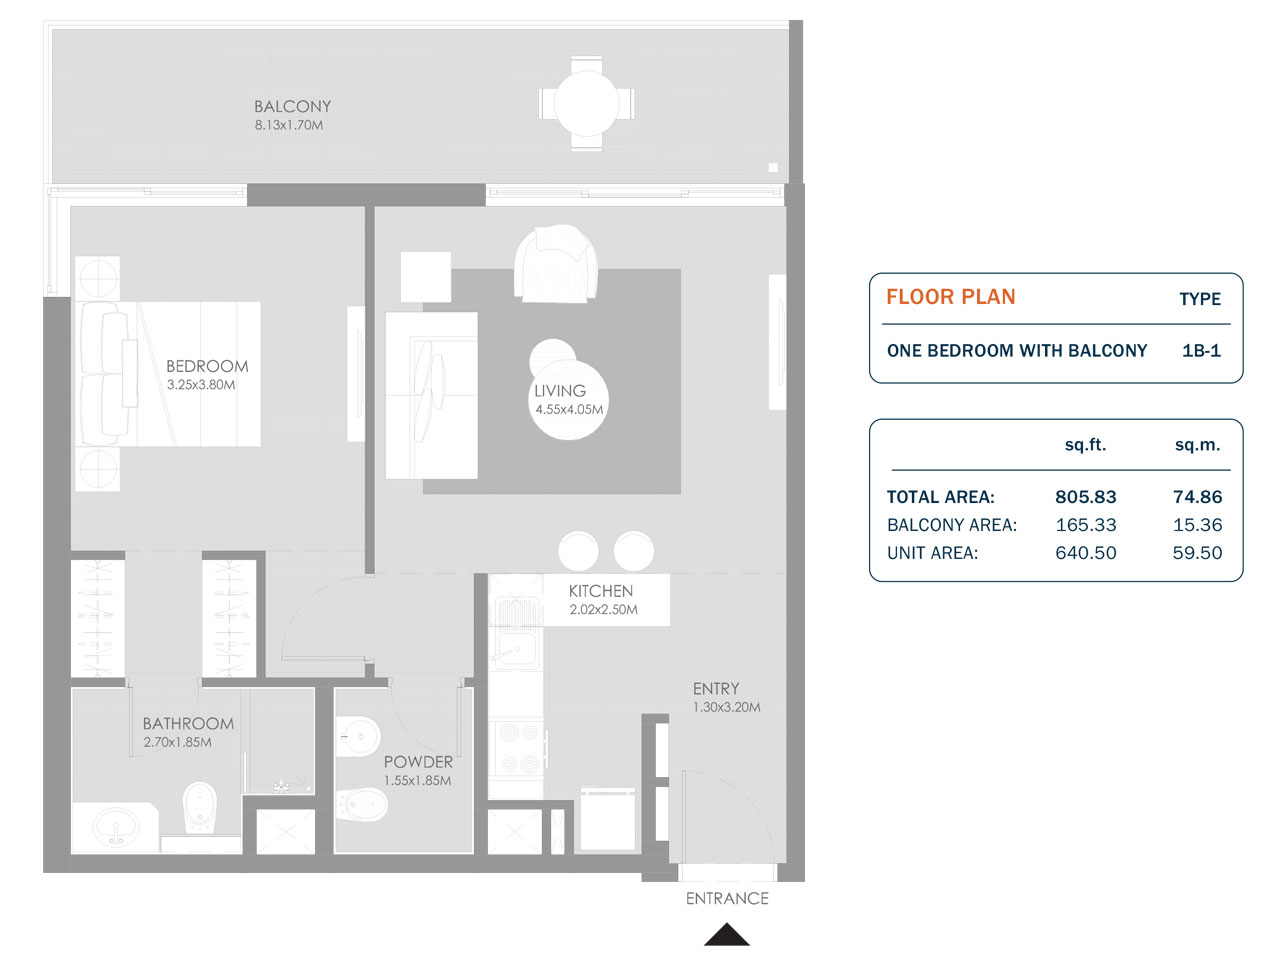 1 Bedroom, Size 805.83 Sq.ft